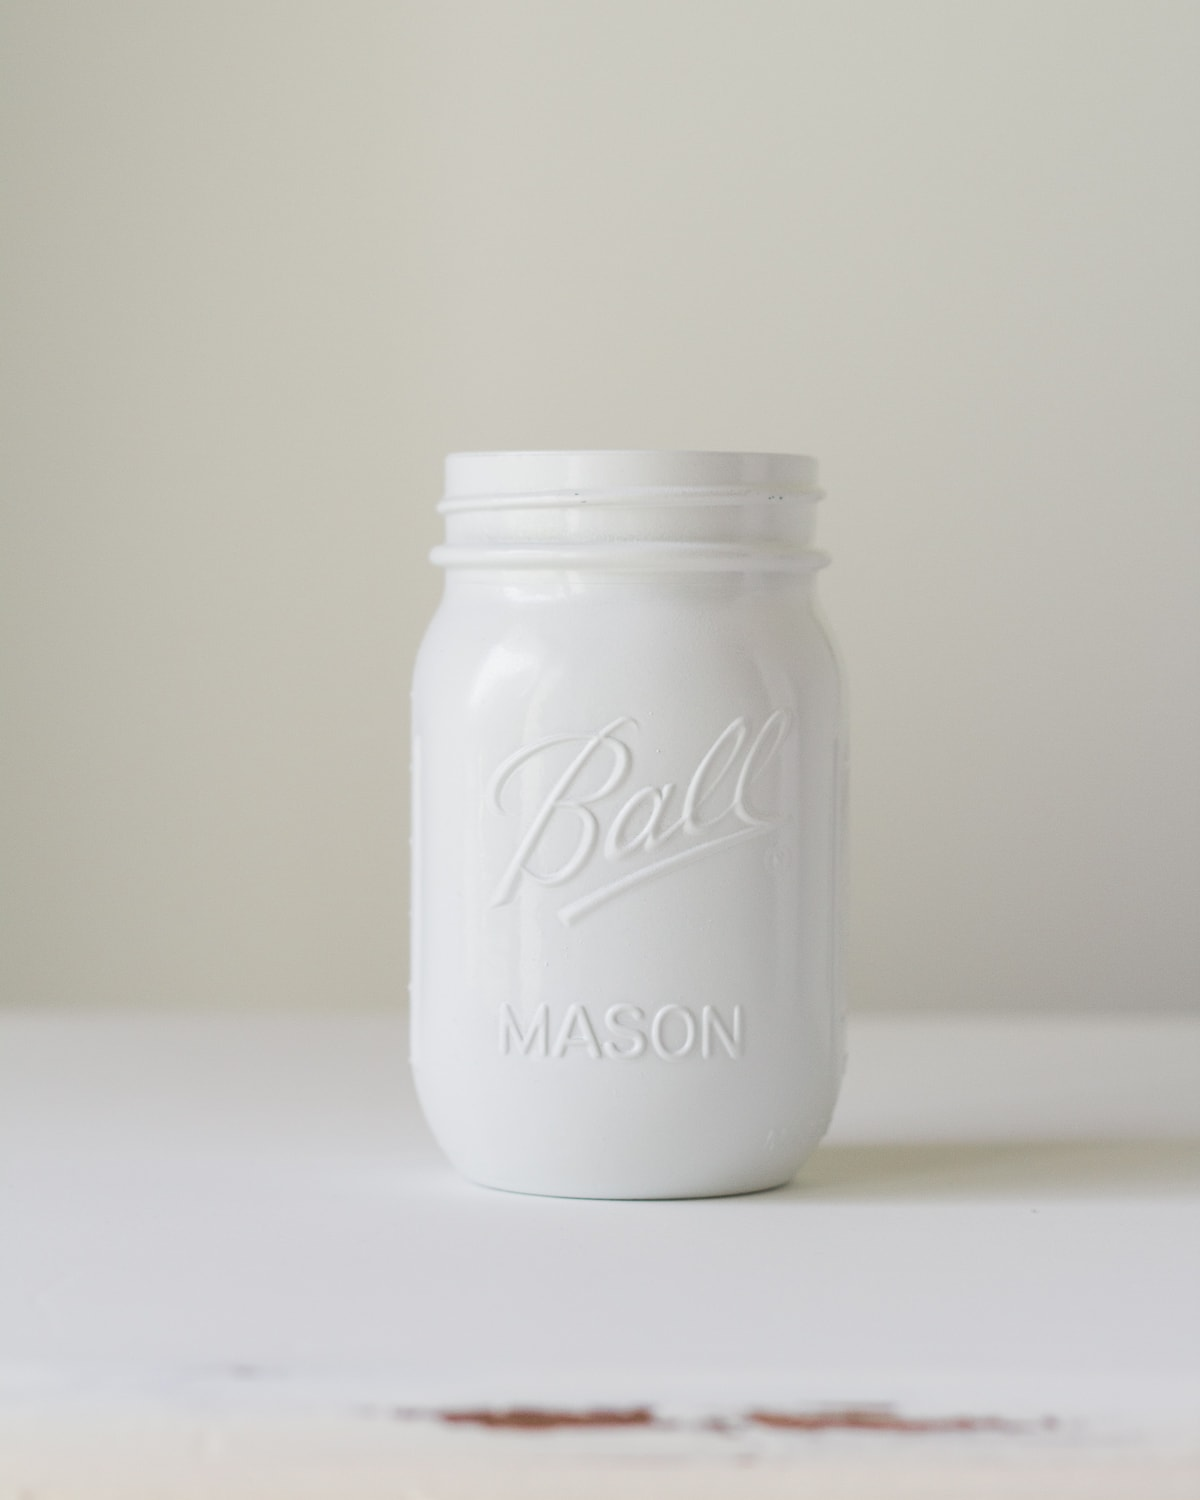 A Ball Mason Jar painted with glossy white spray paint.